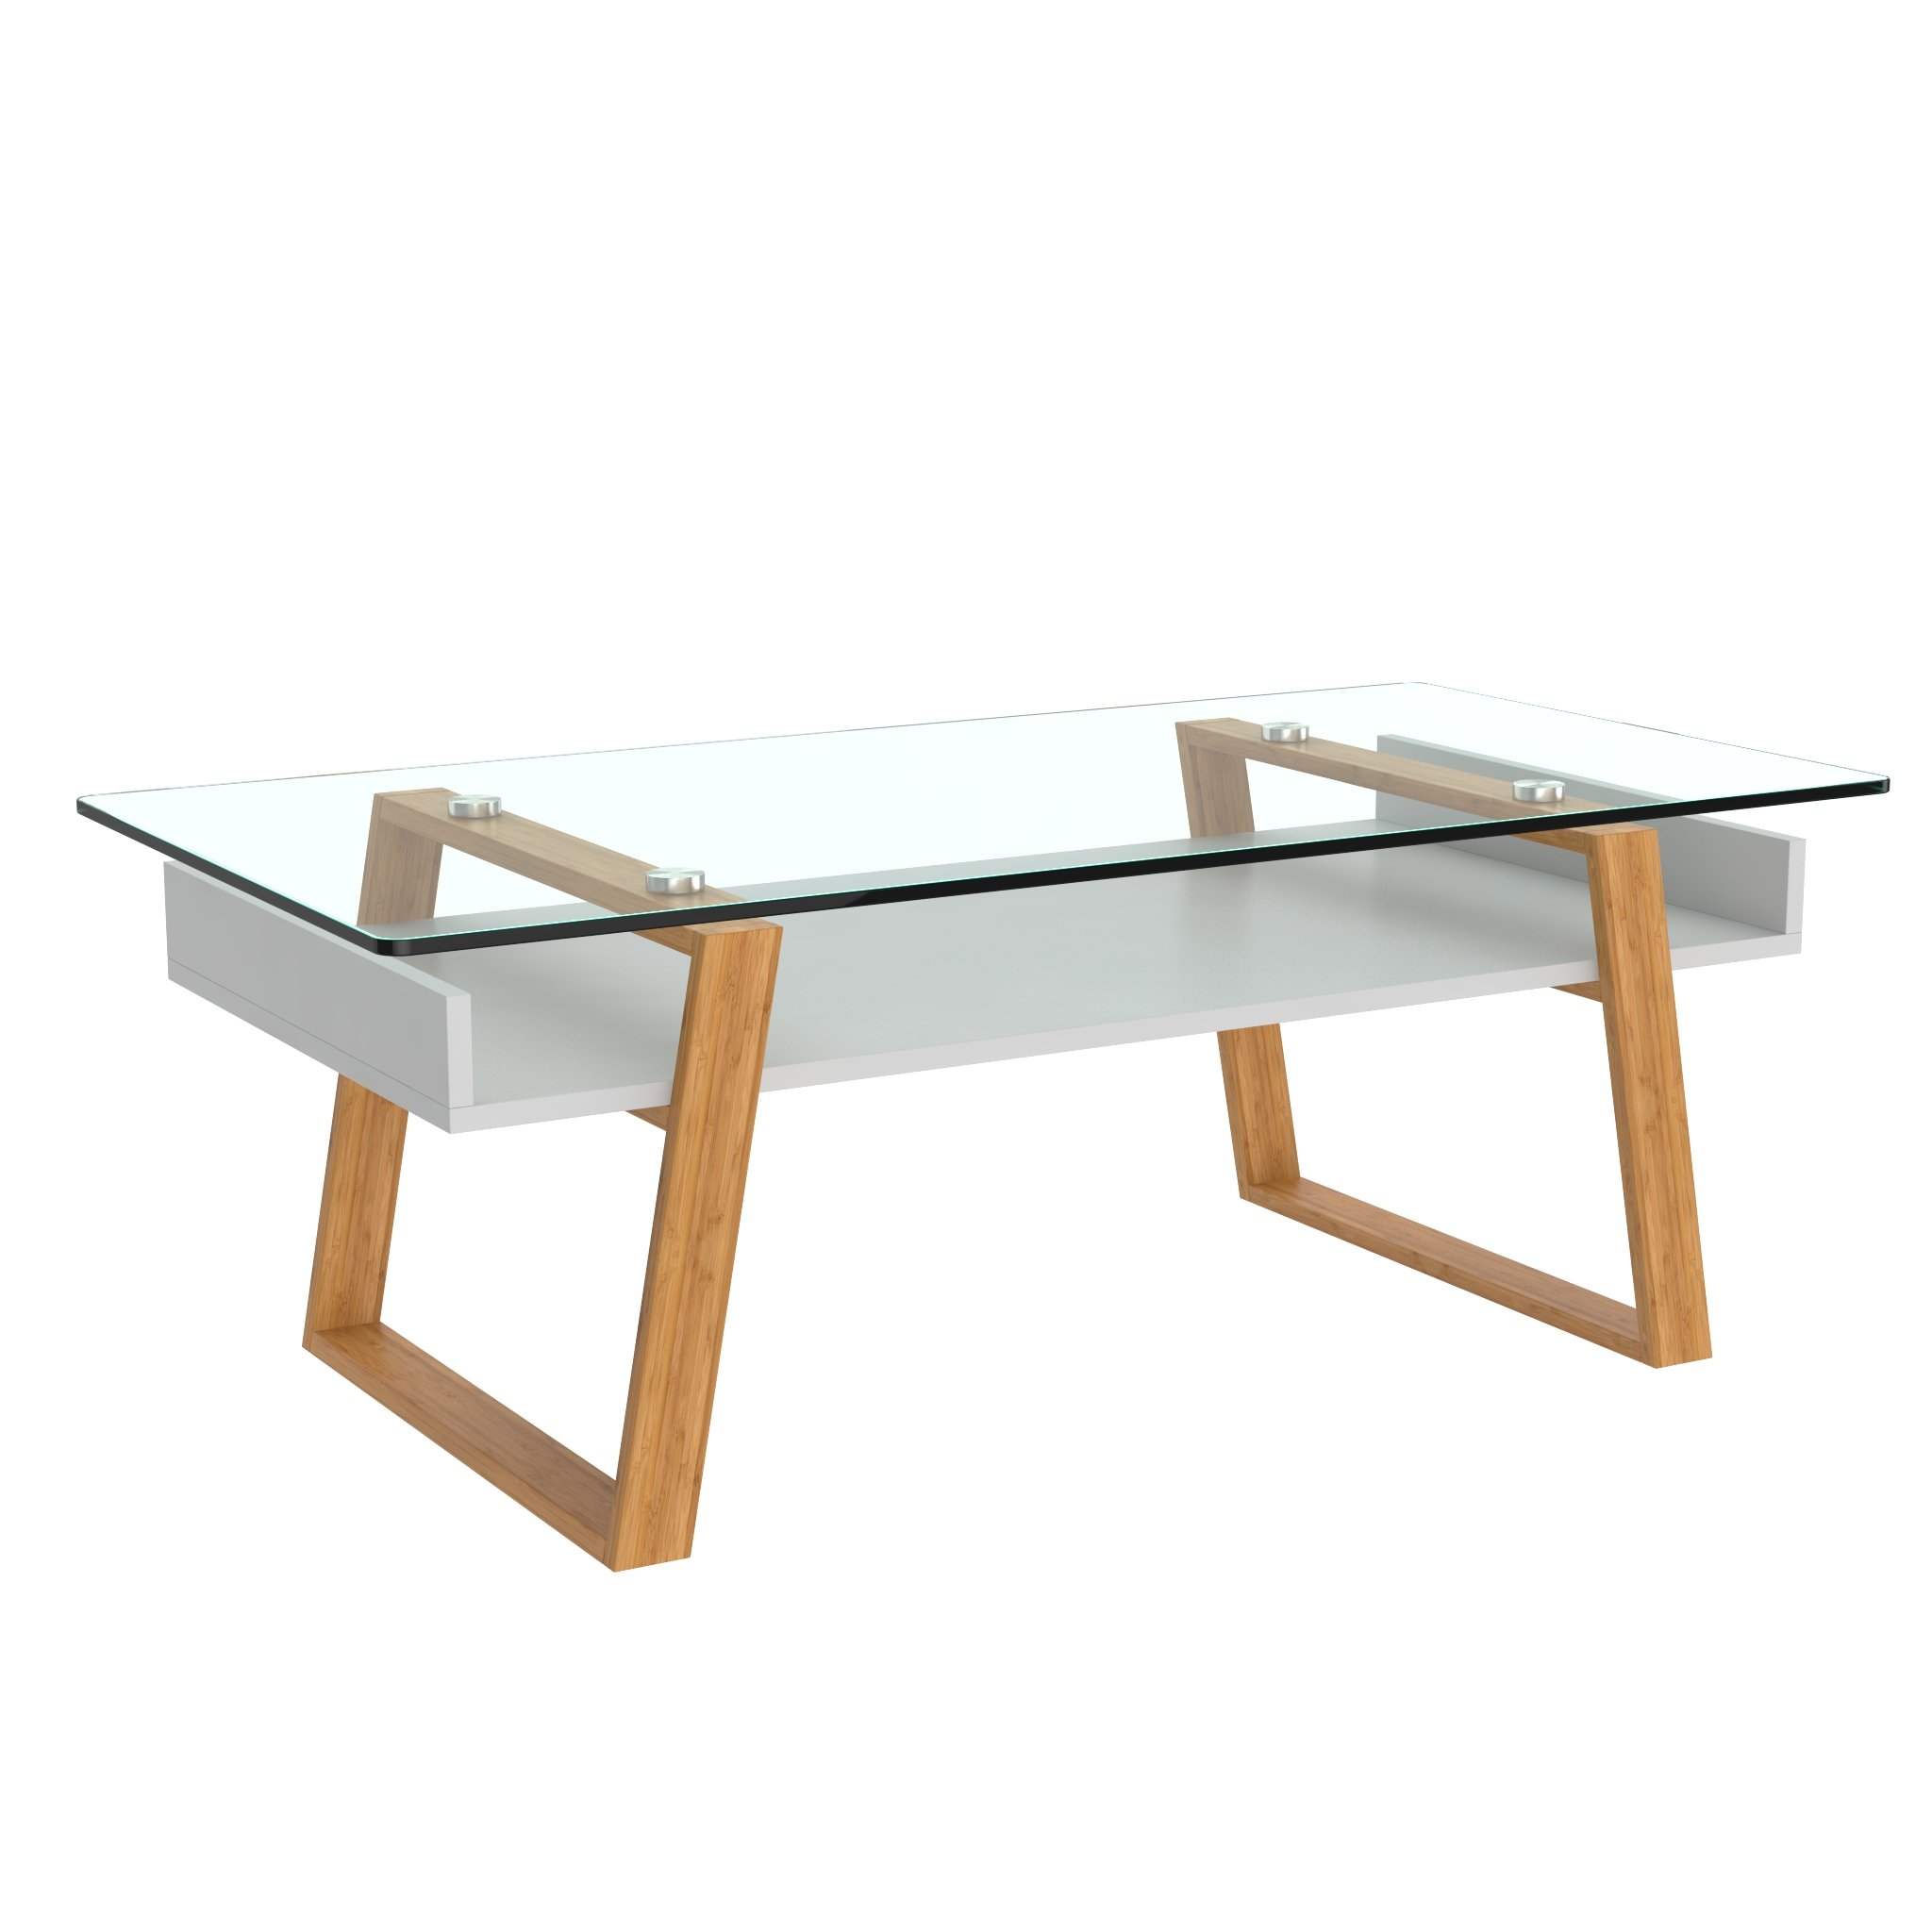 bonVIVO Coffee Table Donatella, Modern Coffee Table for Living Room, Home Decor White Coffee Table, Coffee or Side Table with Natural Wood Frame and Glass Top, Coffee Tables by bonVIVO